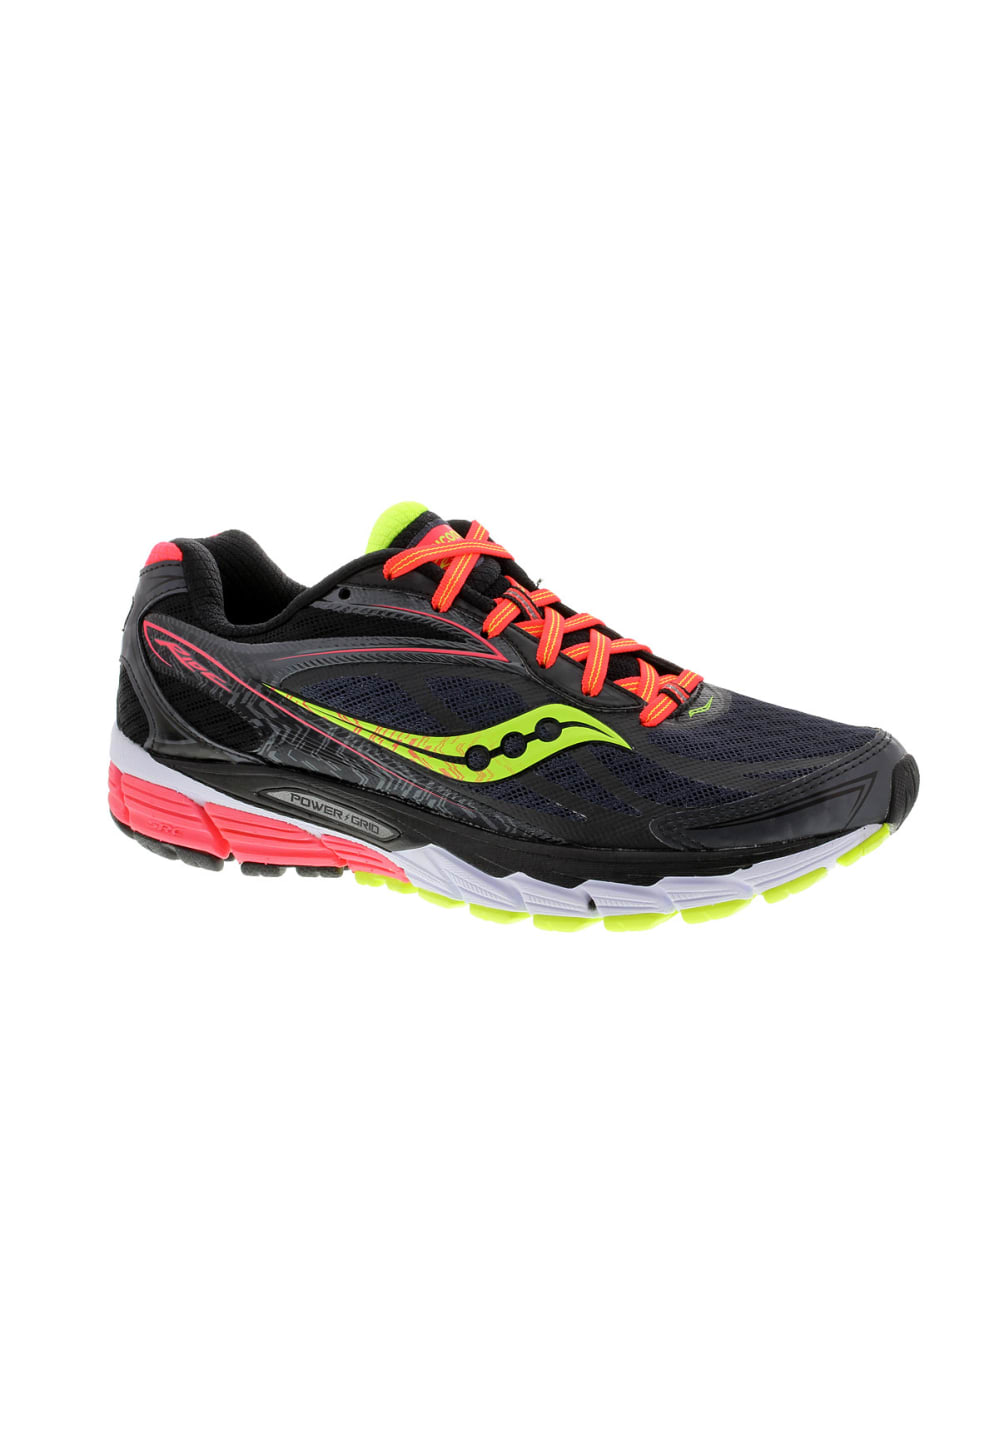 66ab7b7e79d8 Saucony Ride 8 - Running shoes for Women - Black